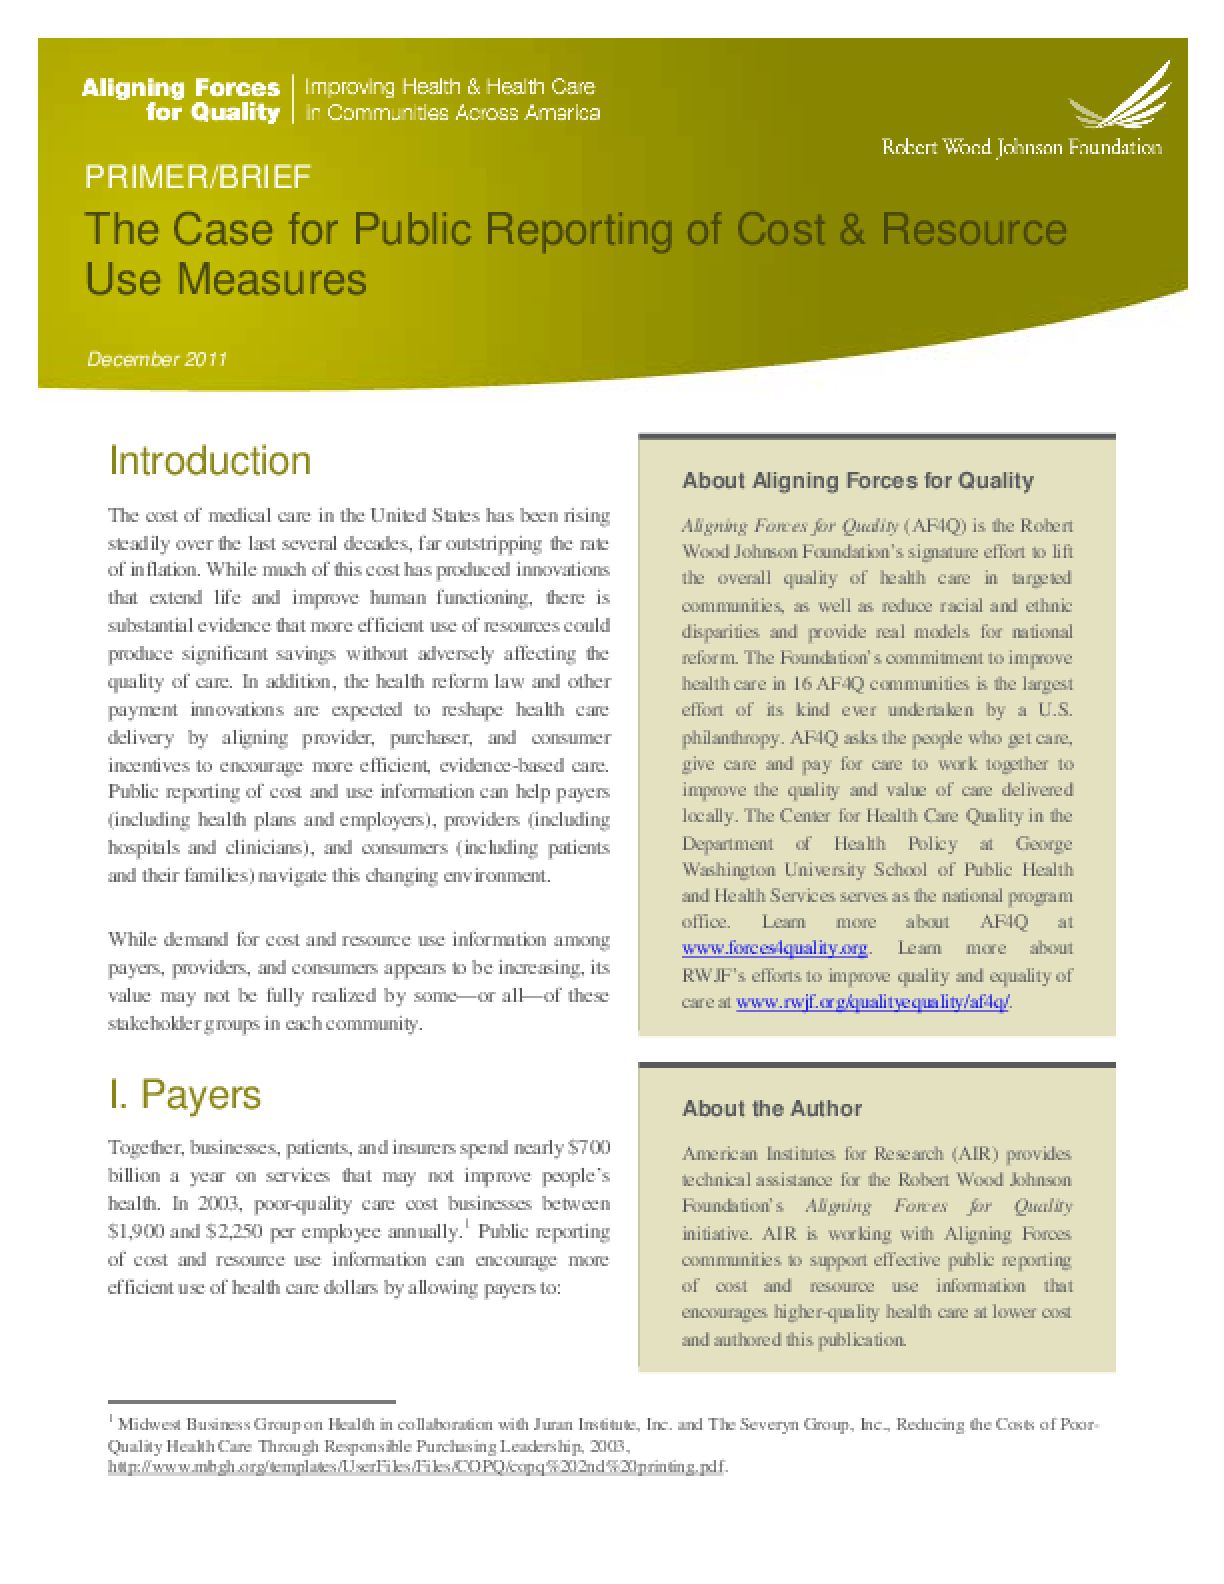 The Case for Public Reporting of Cost & Resource Use Measures